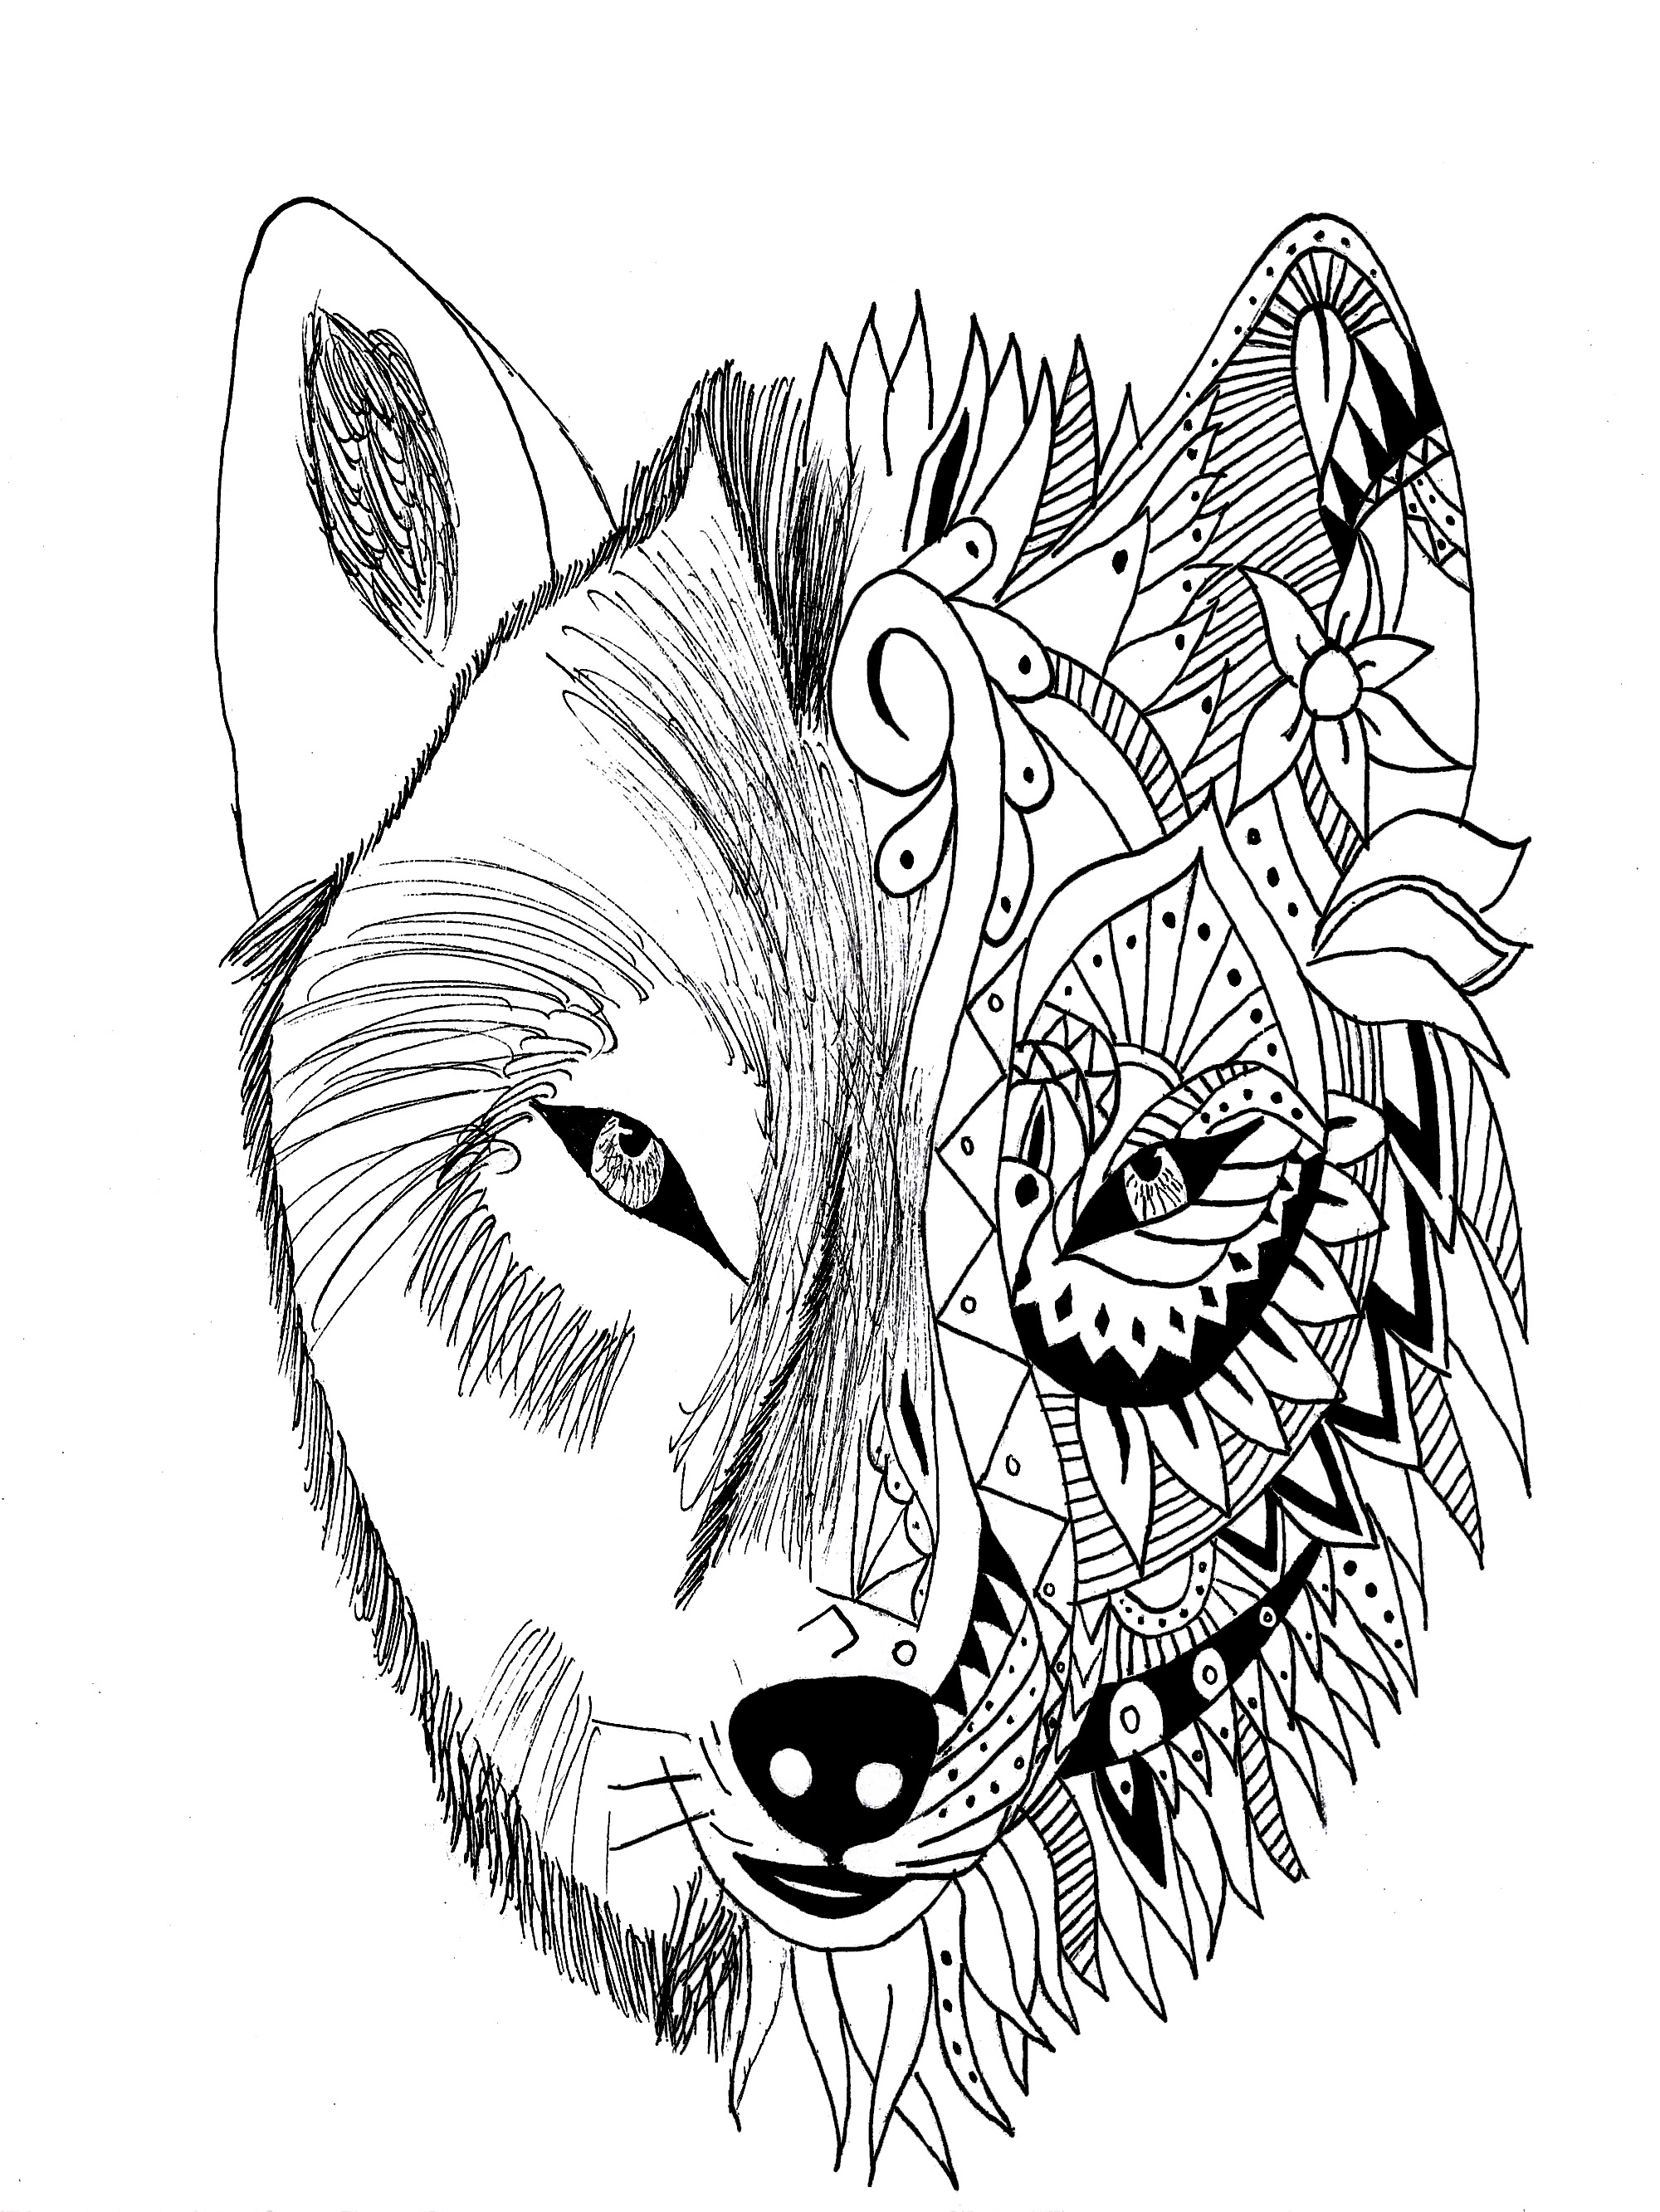 First Rate Tattoo Coloring Pages Printable Tattoos for Adults to to Print Of Wolves Coloring Pages Wolf Coloring Pages Free Coloring Pages Collection